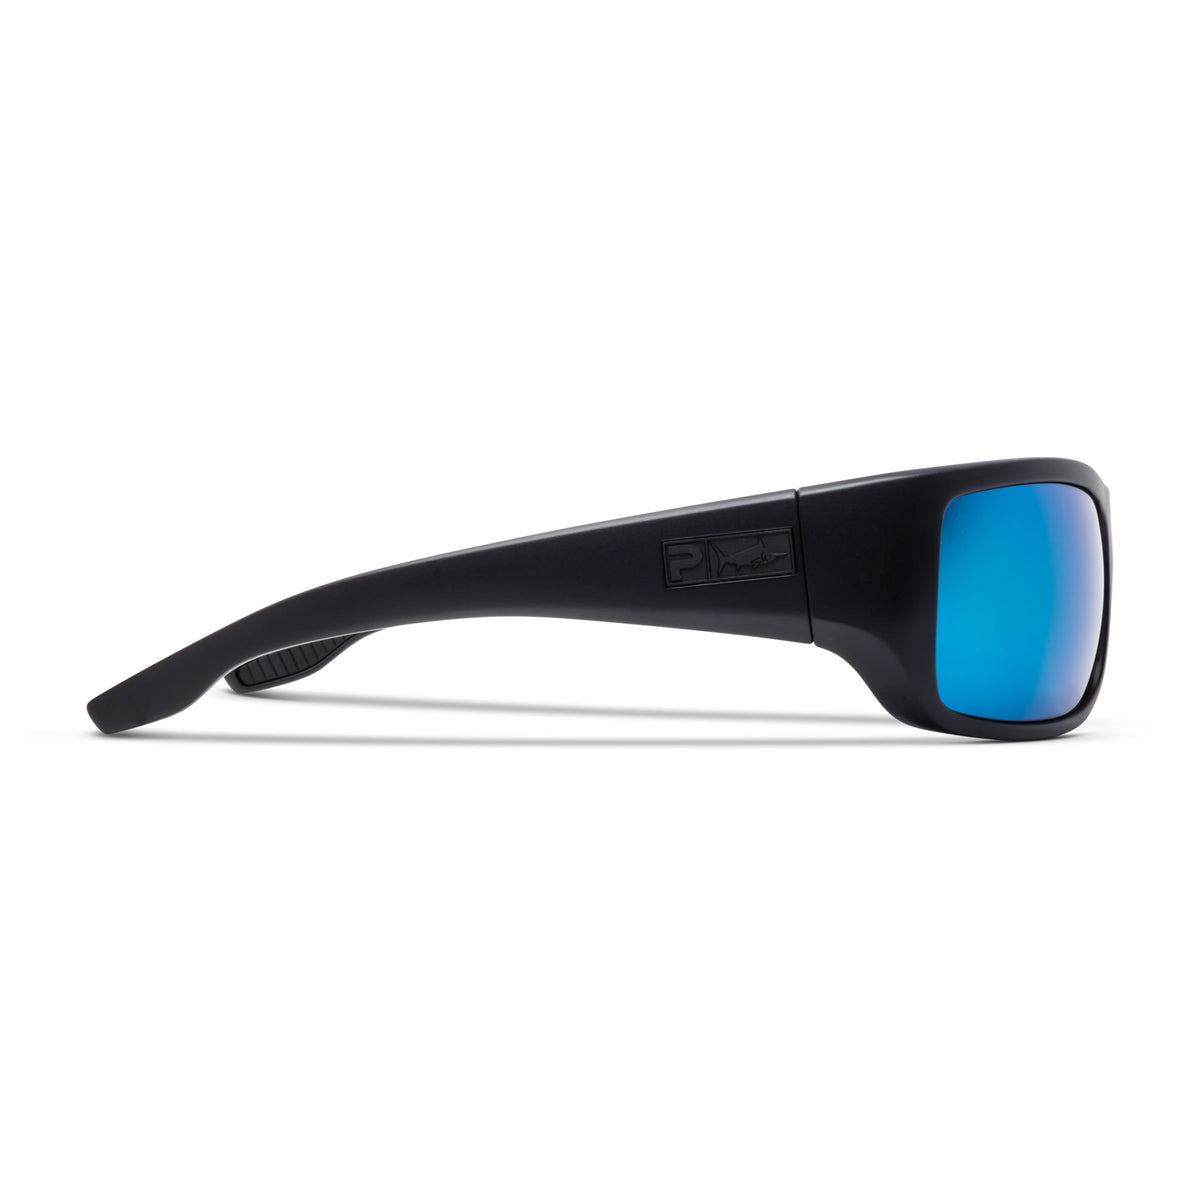 Fish Hook - Polarized Mineral Glass™ Big Image - 3